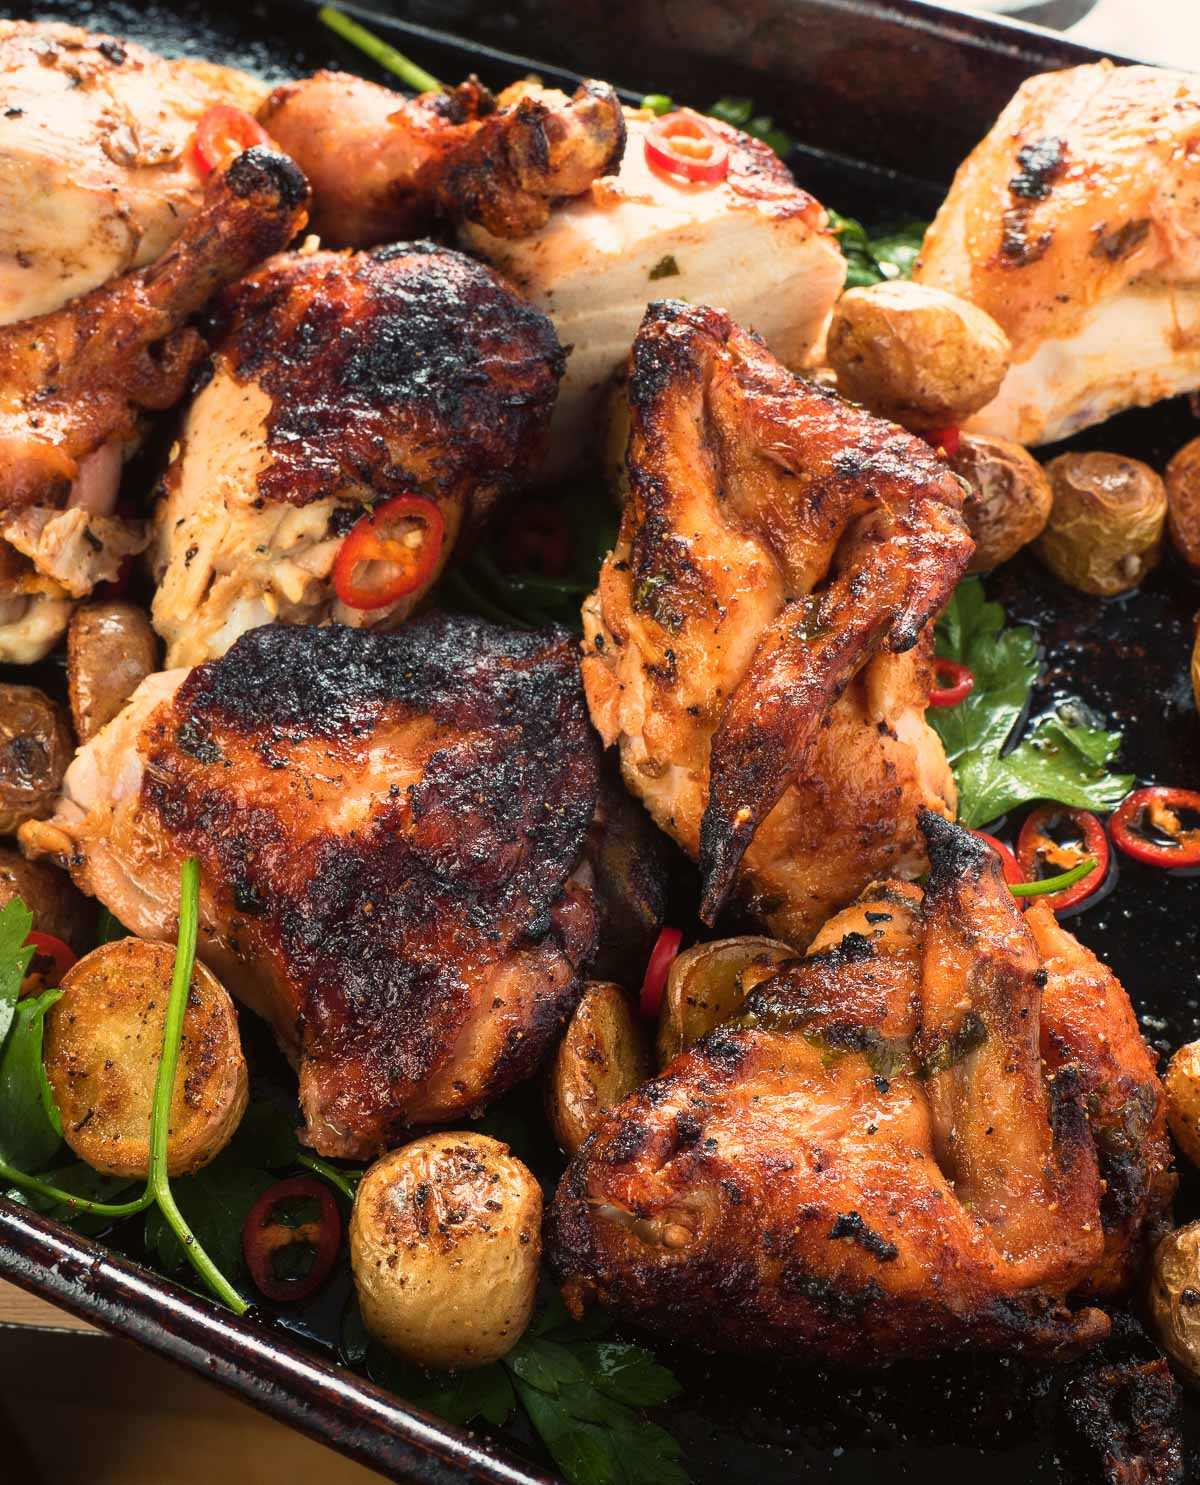 Spicy, lemony, and smoky flavours come together in Portuguese grilled chicken.